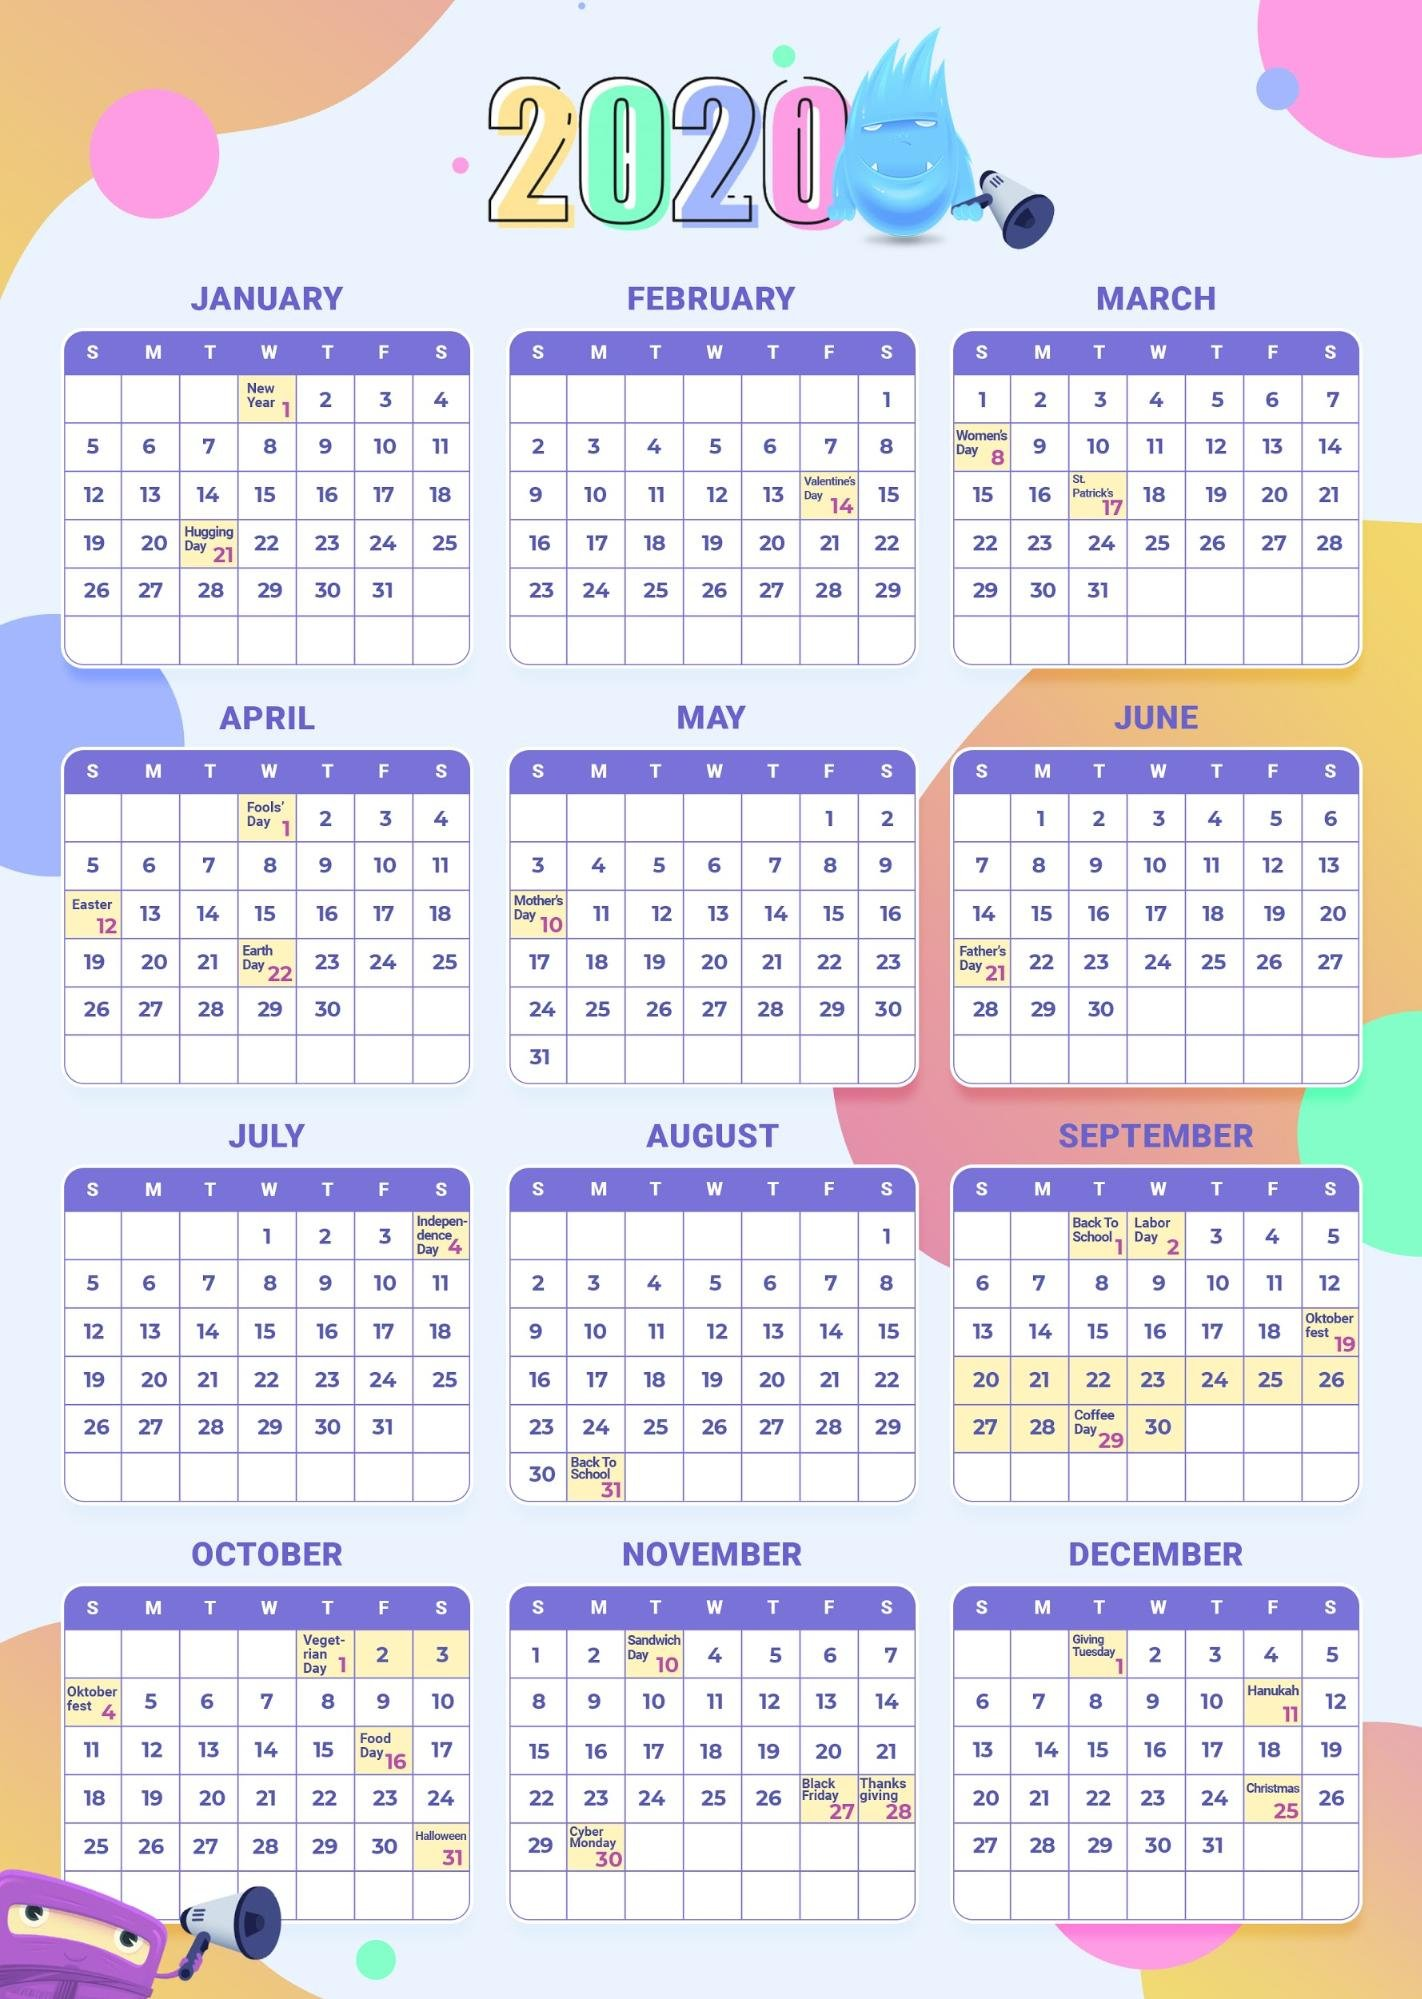 18 Editable Calendar Templates To Keep Track Of Important Dates and Events - image10 4